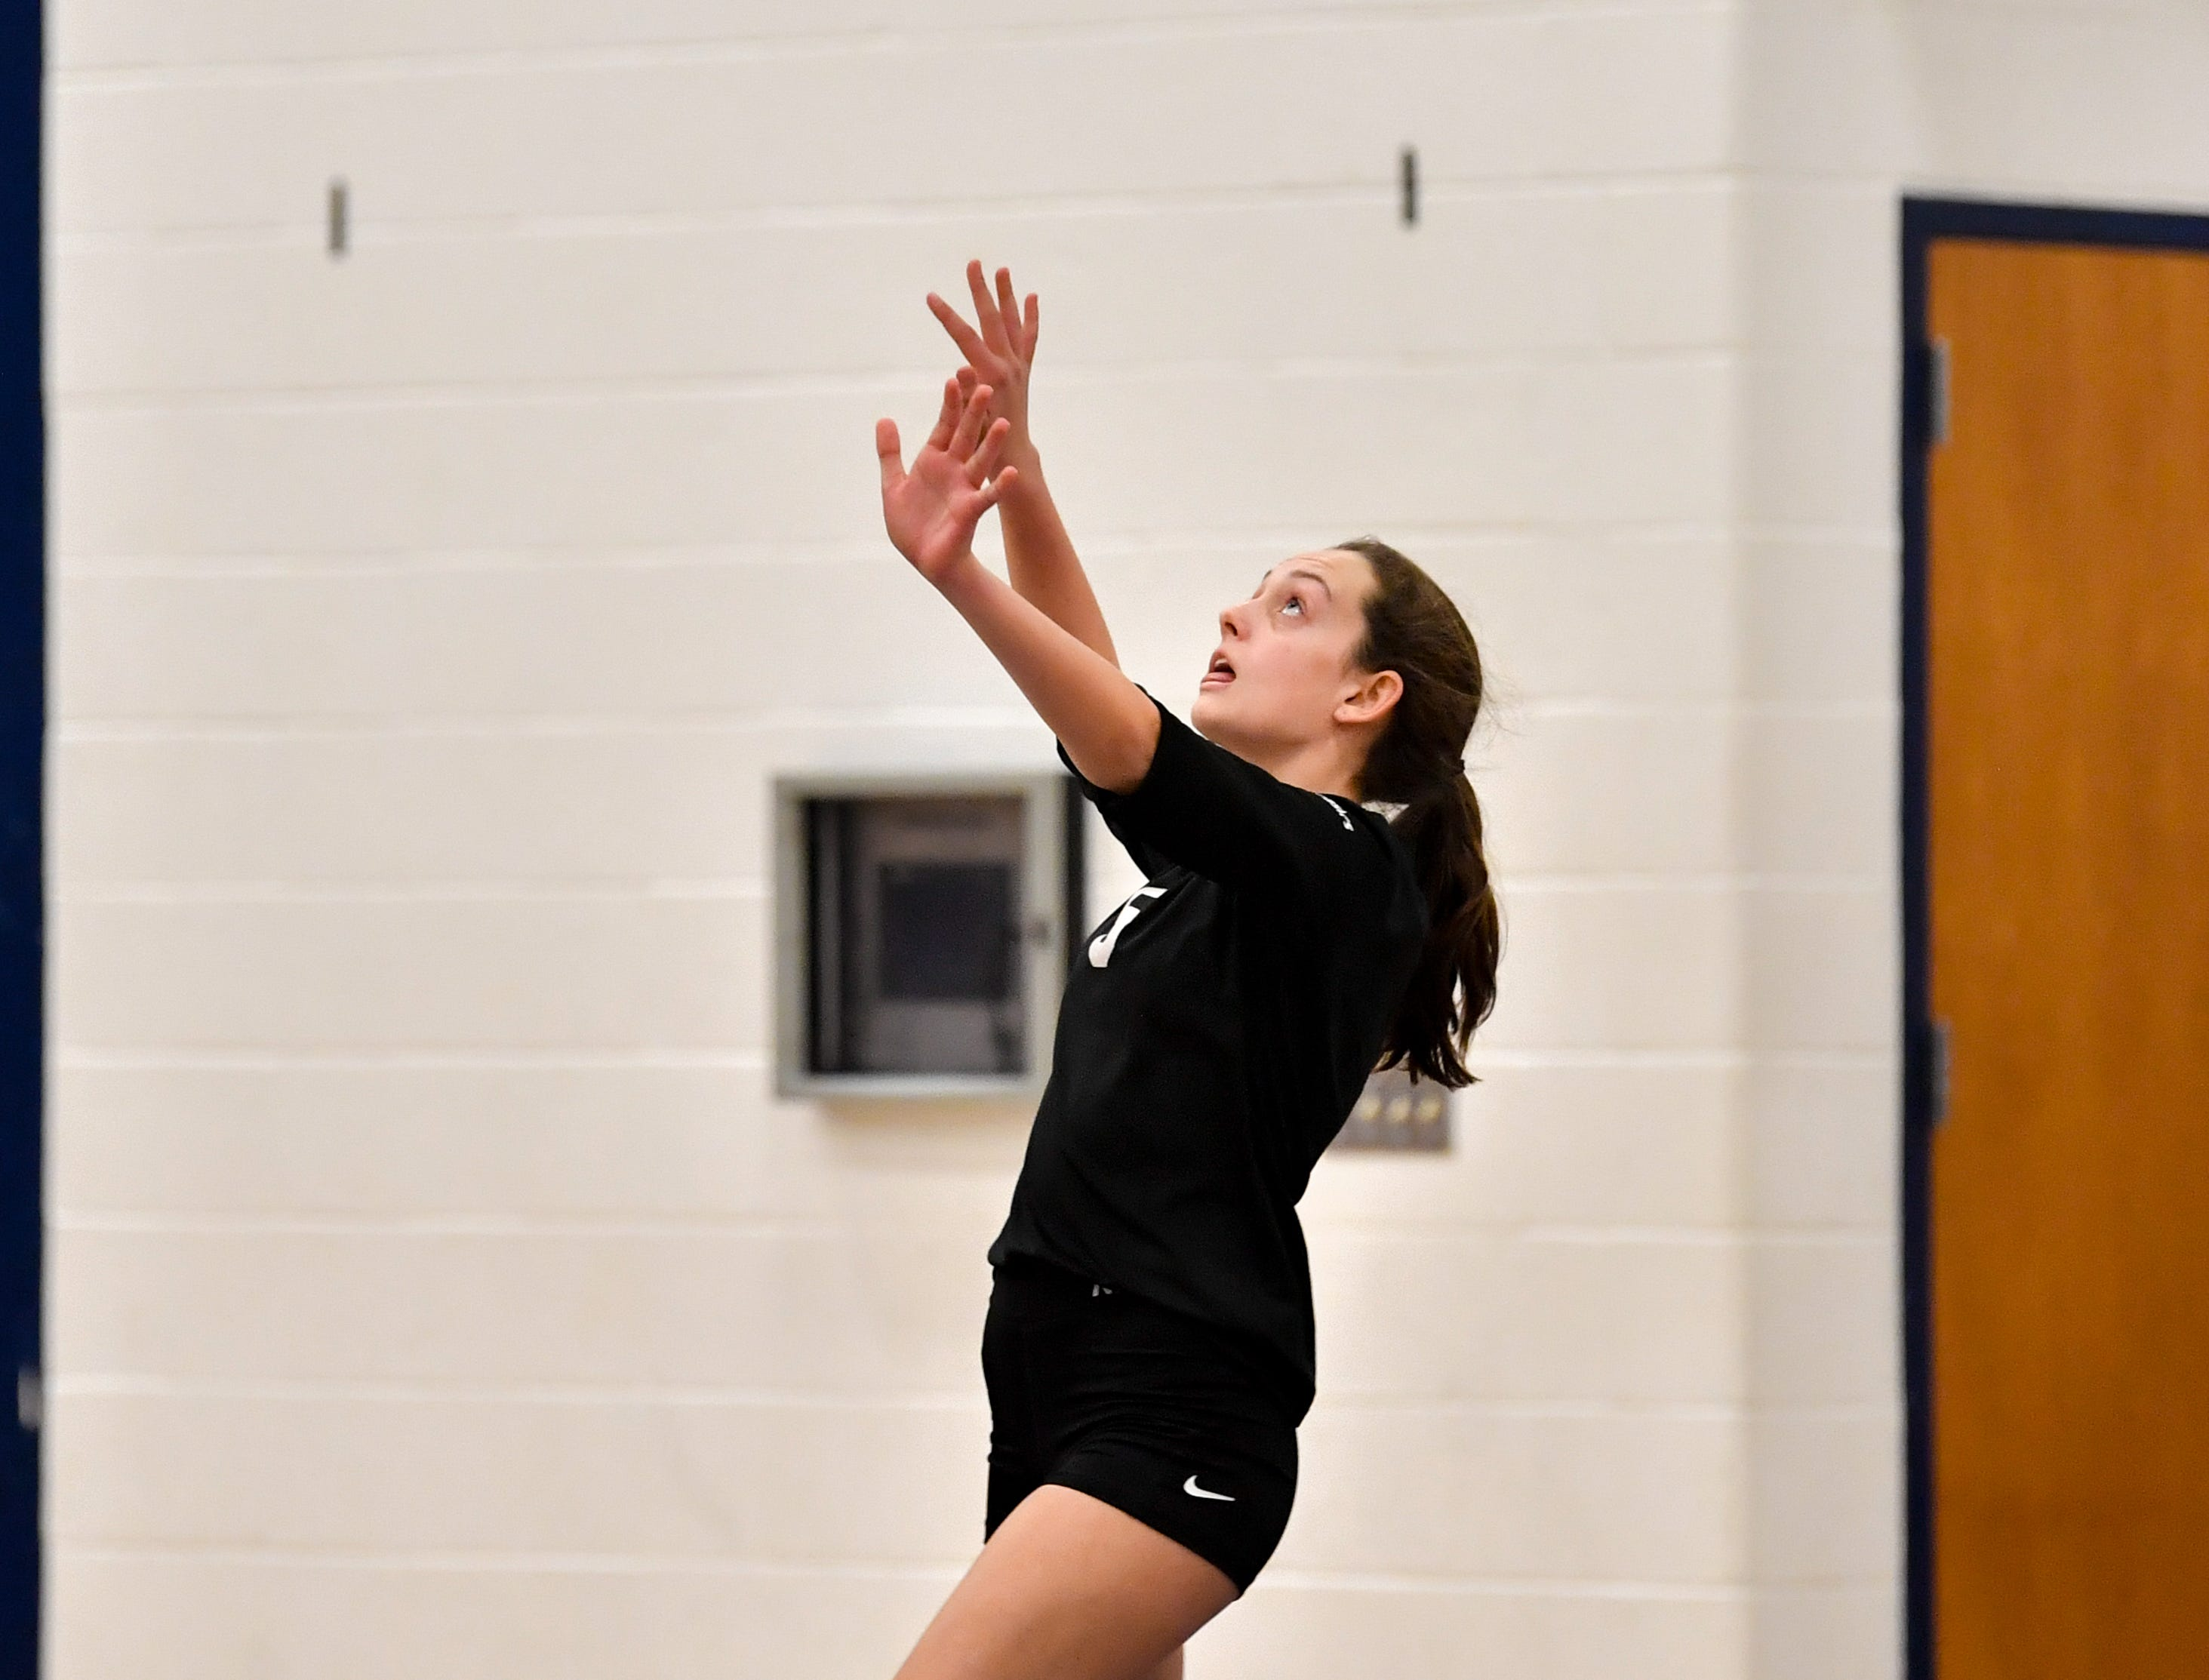 Mackenzie Corsa (5) winds up for the serve during the District 3 Class 3A girls' volleyball quarterfinals between Dover and York Suburban at West York High School, October 30, 2018. The Eagles defeated the Trojans 3-2.